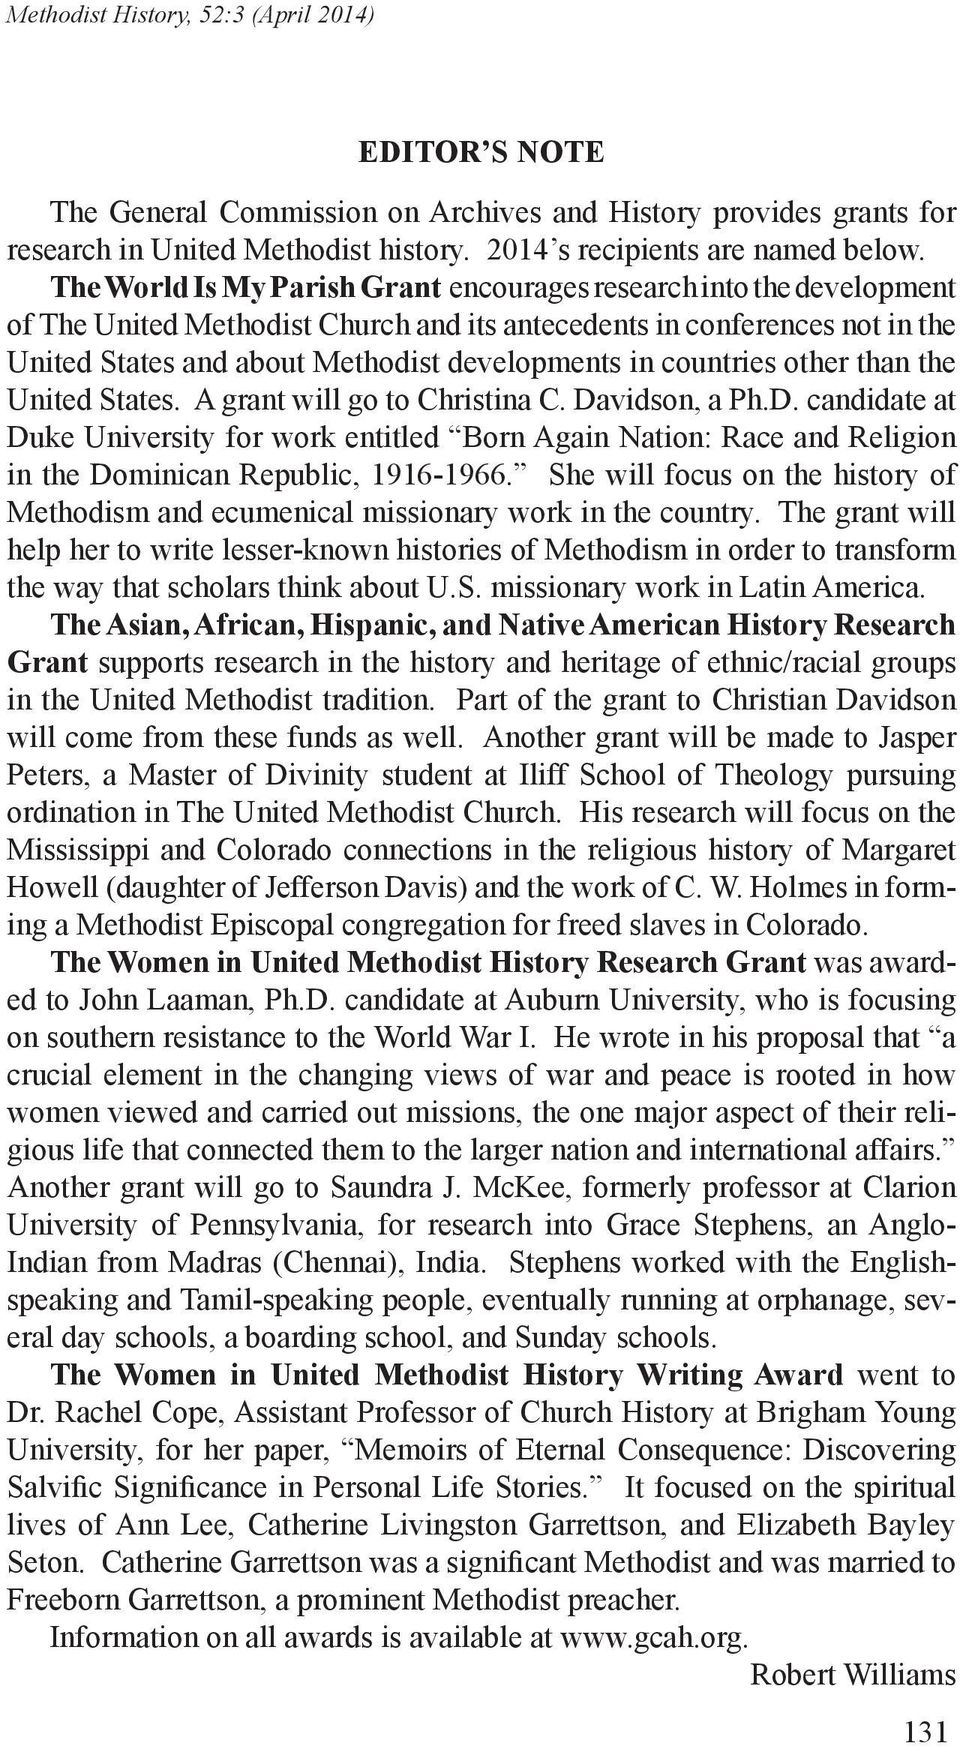 countries other than the United States. A grant will go to Christina C. Davidson, a Ph.D. candidate at Duke University for work entitled Born Again Nation: Race and Religion in the Dominican Republic, 1916-1966.